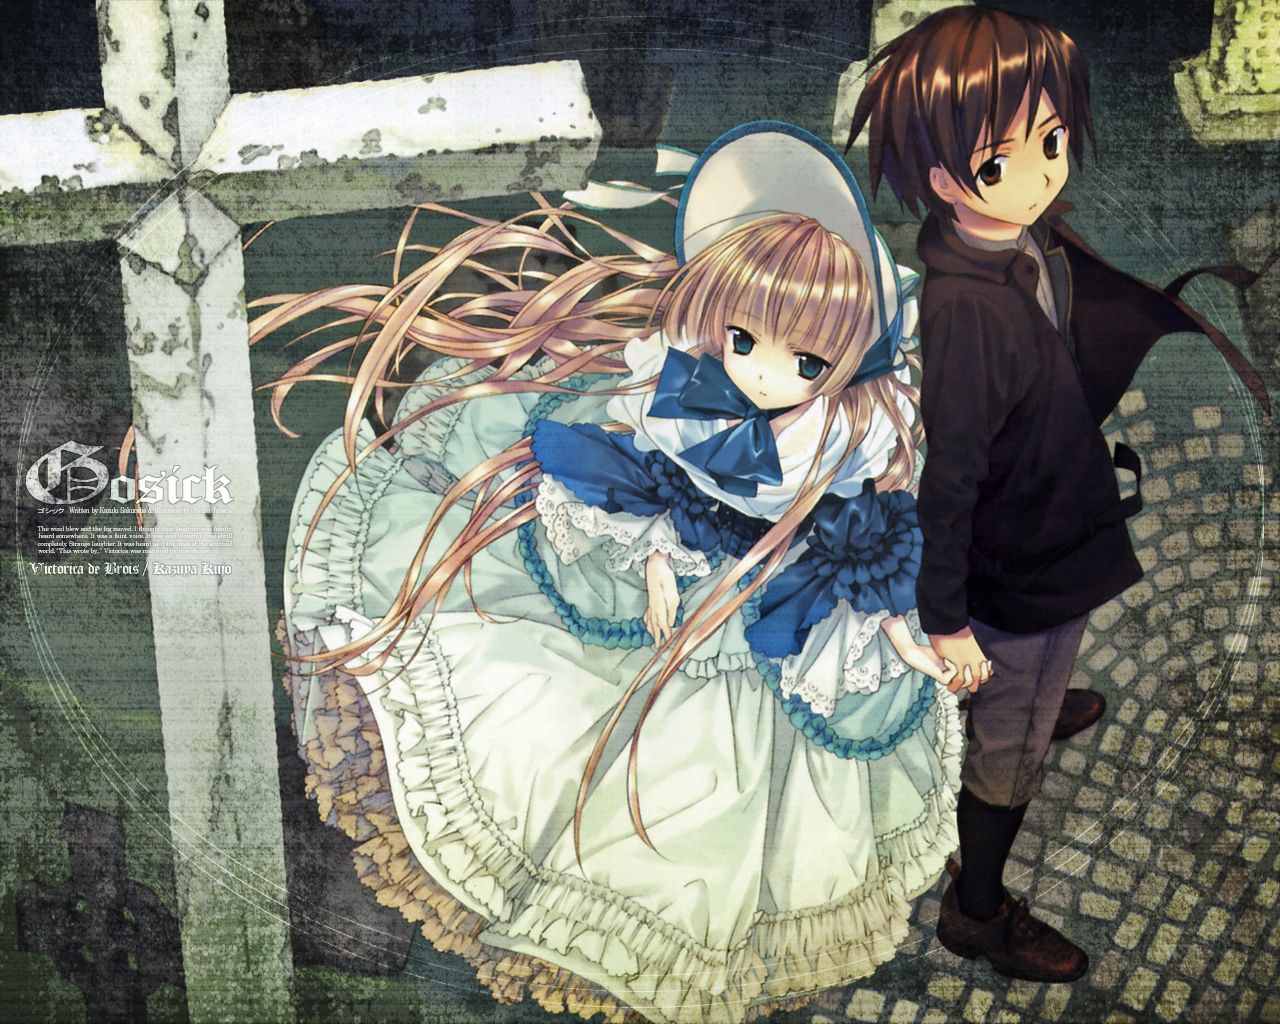 ... gosick had a couple things going for it already and i really did